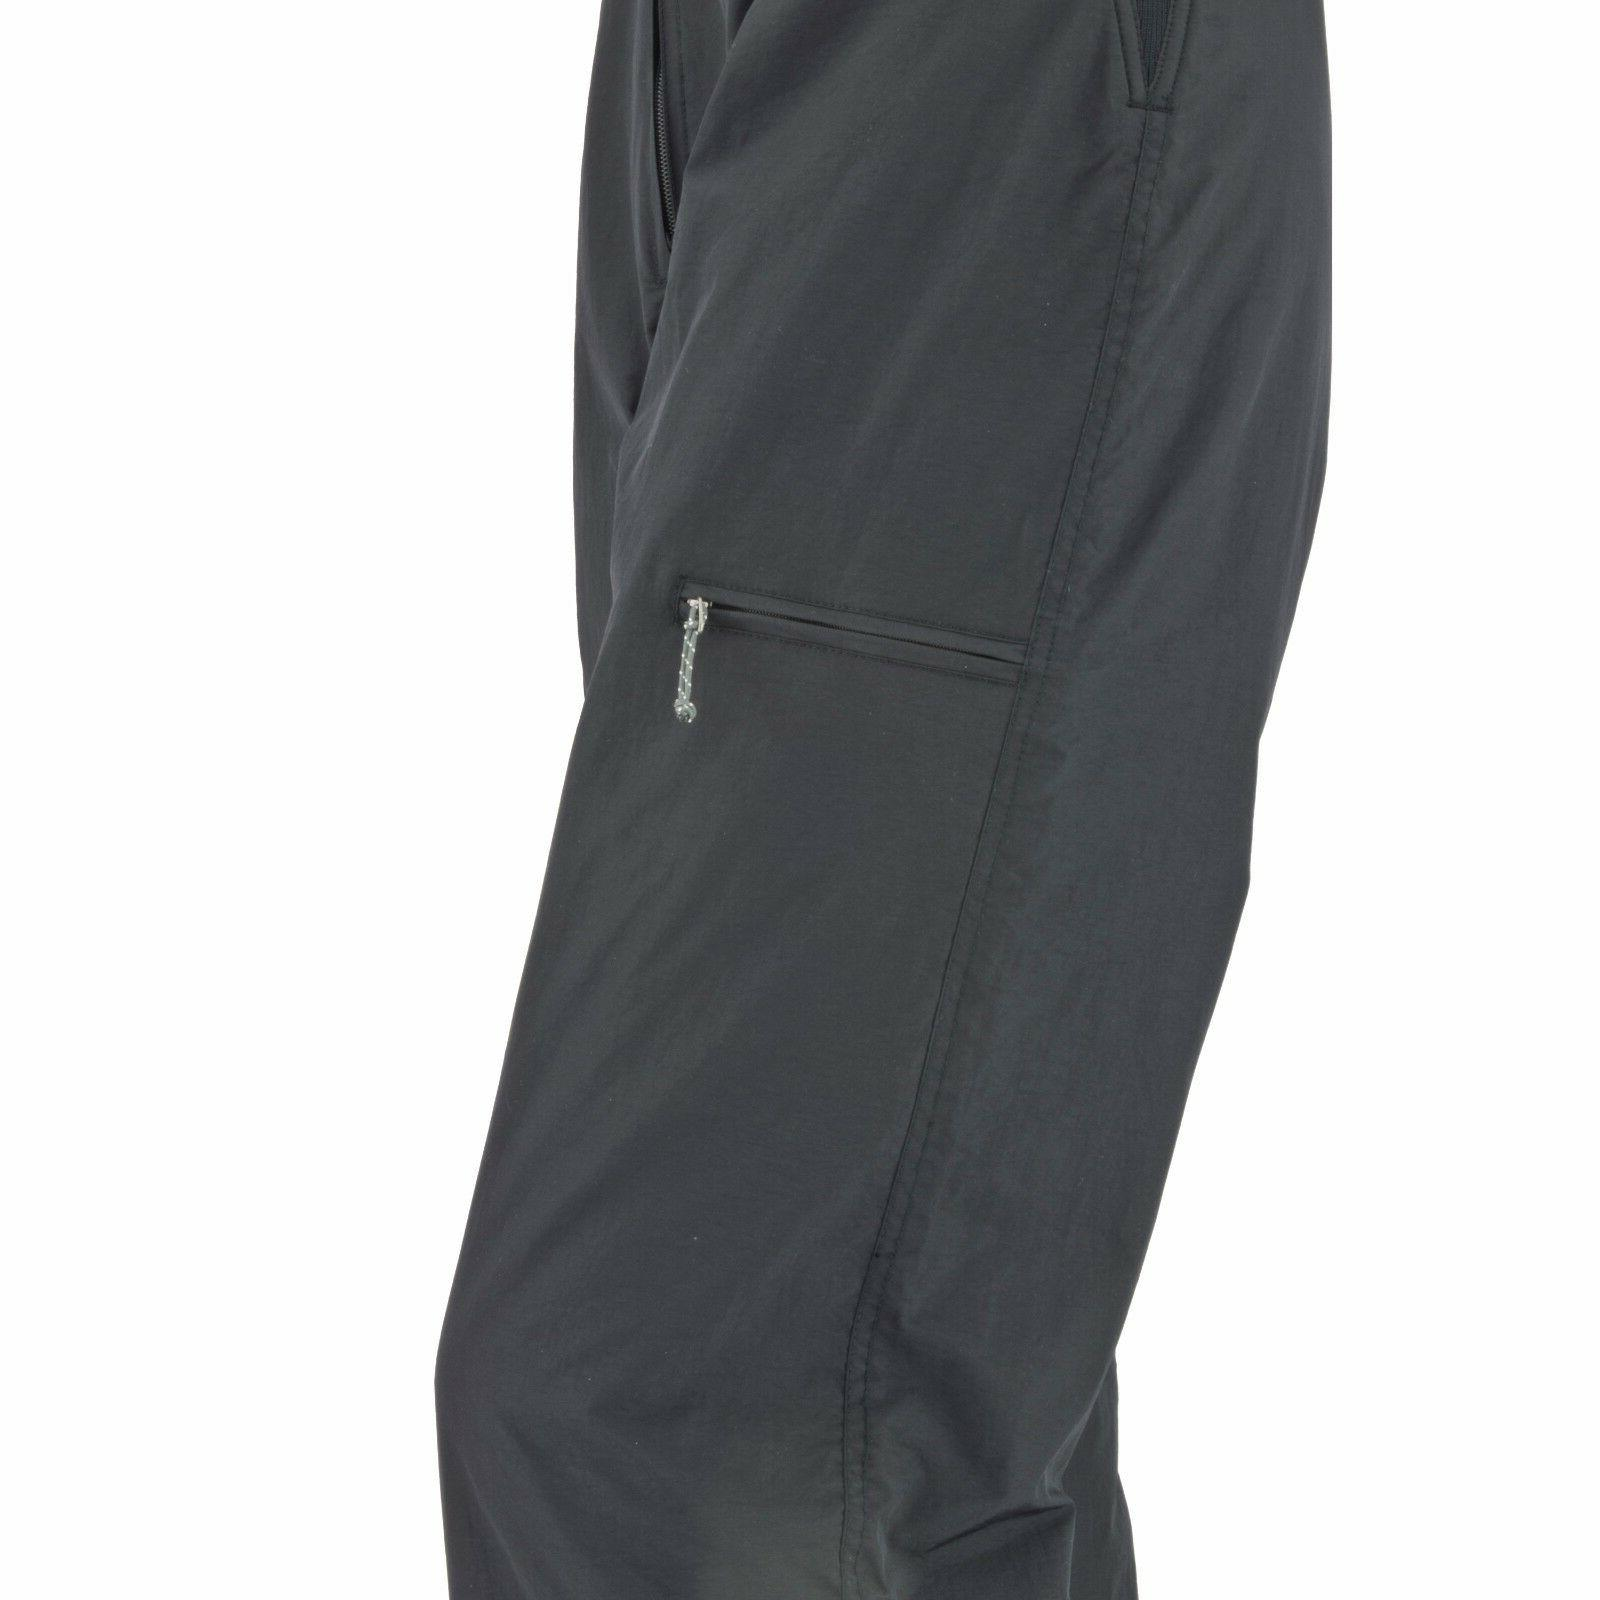 WHITE INSULATED PANT EXTENDED